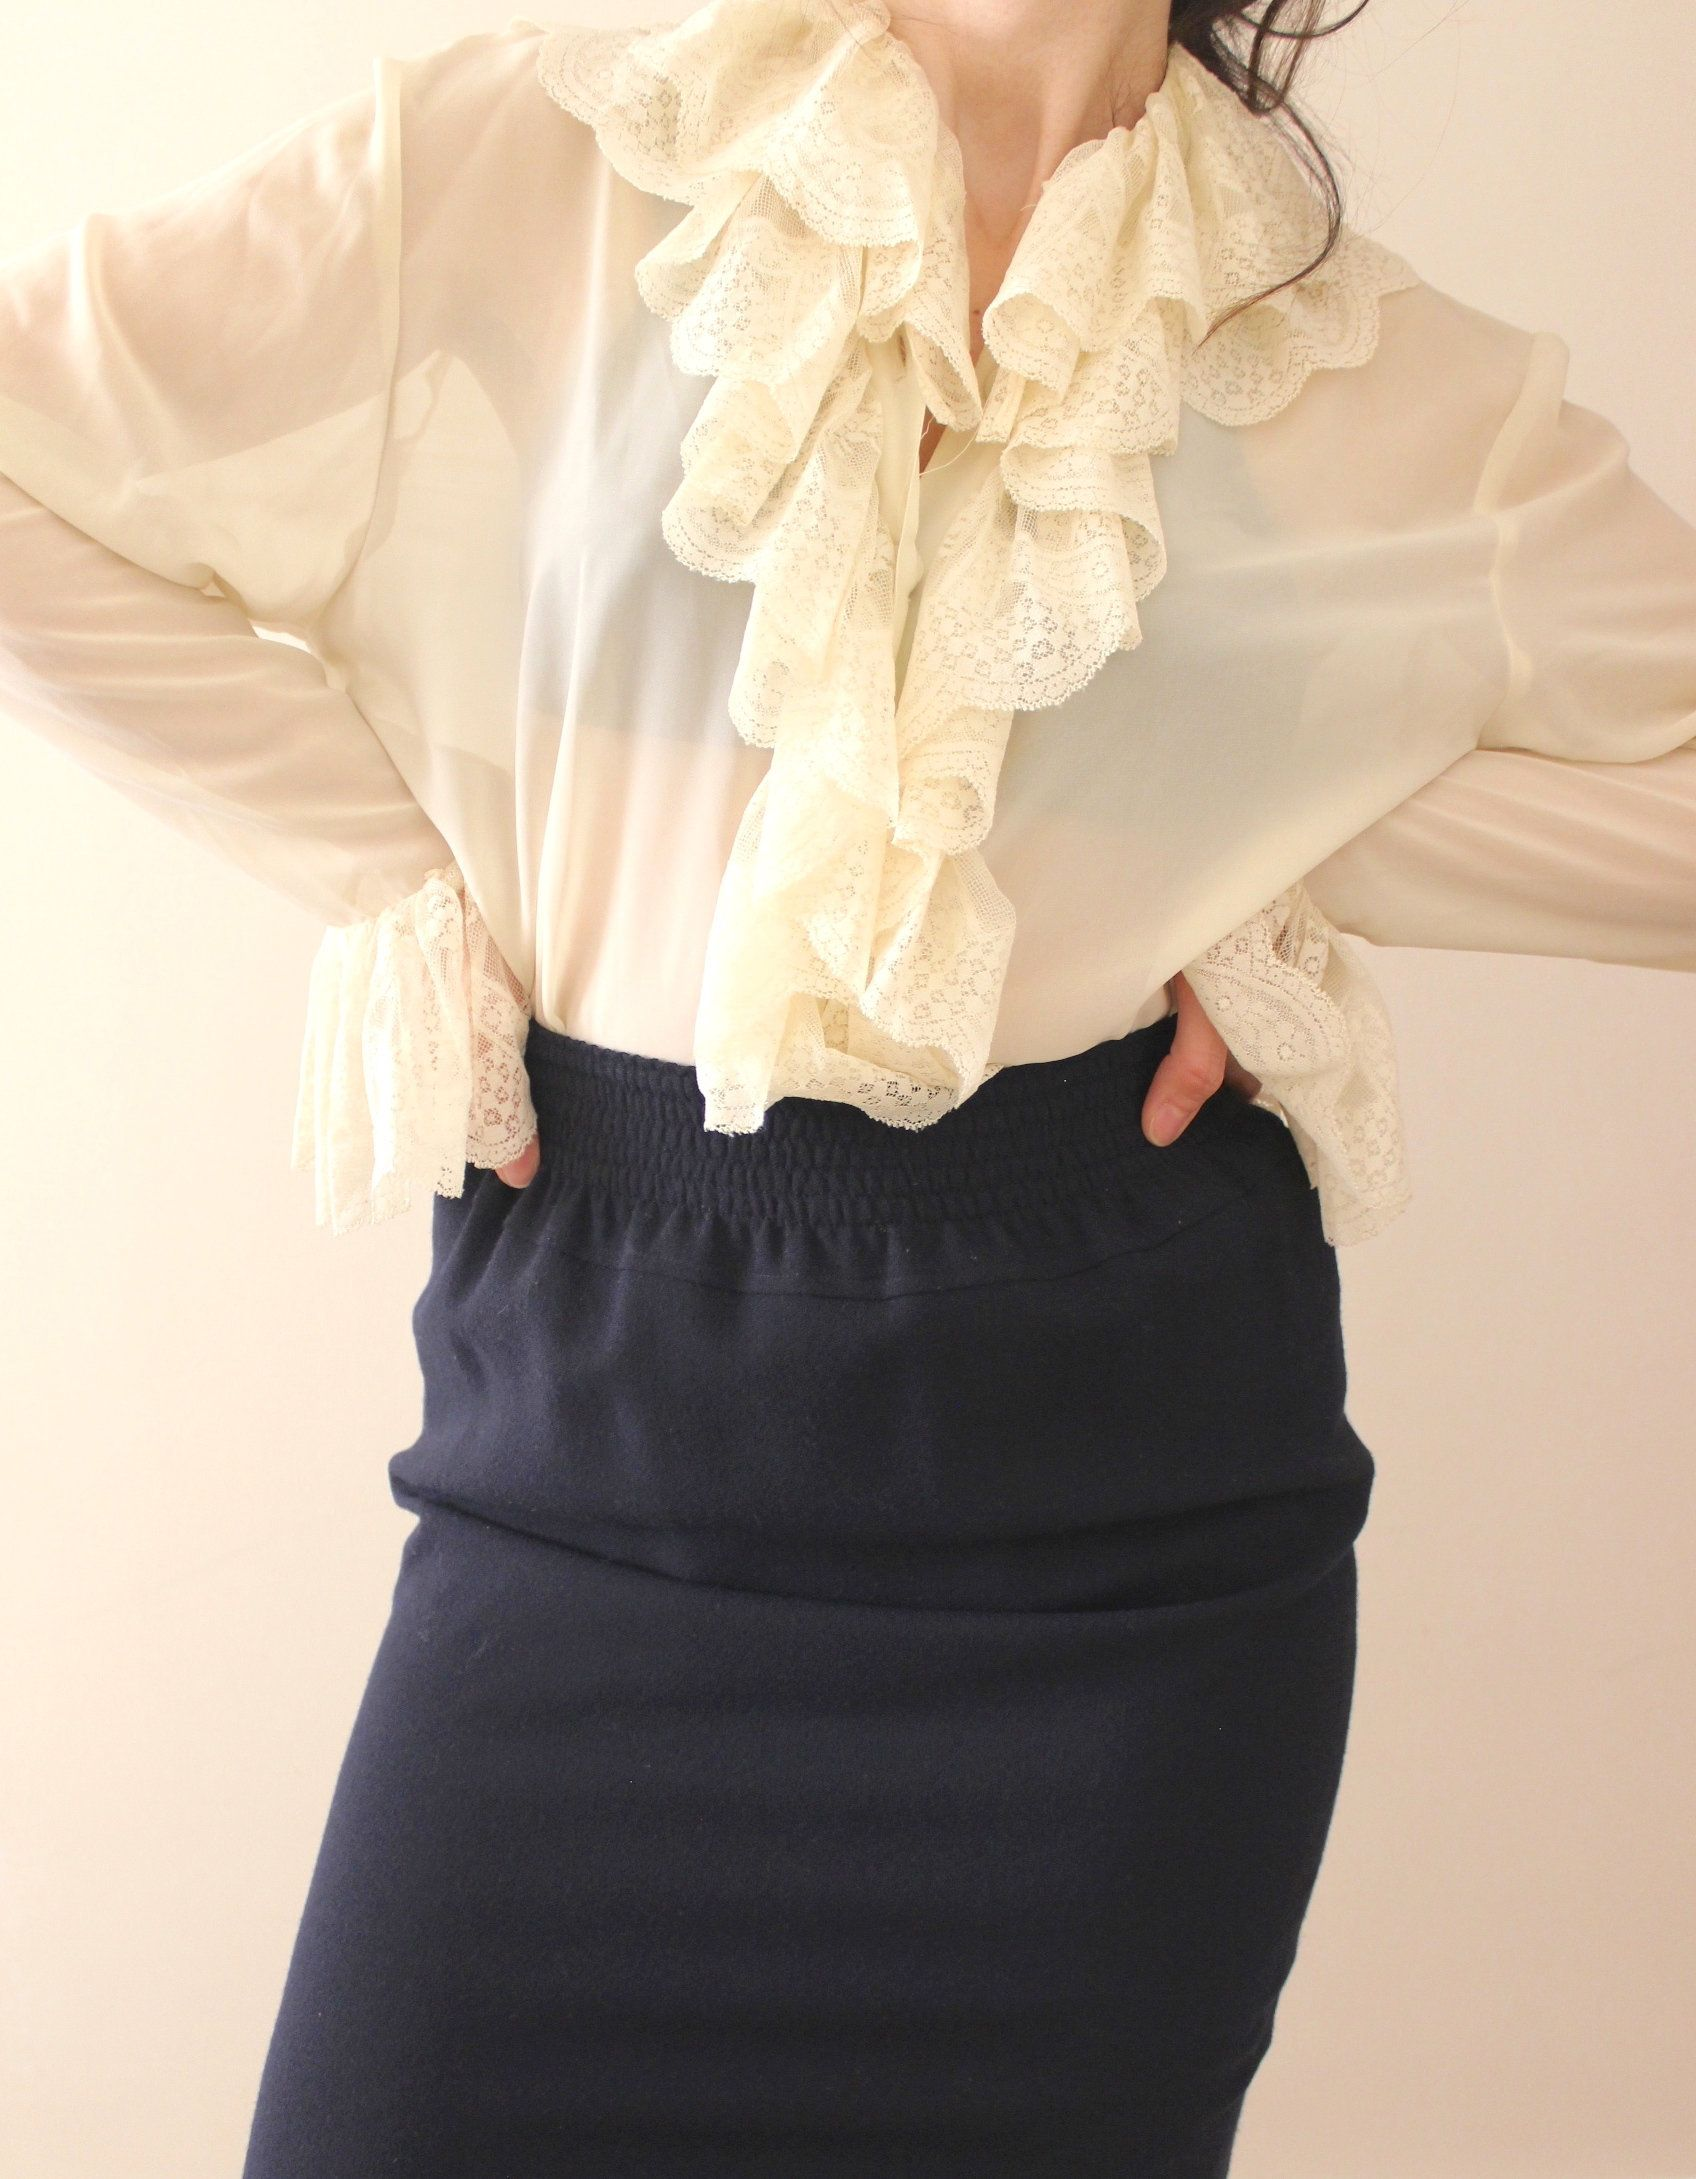 Vintage 80s white blouse with lace collar and short lace sleeves M-L size.